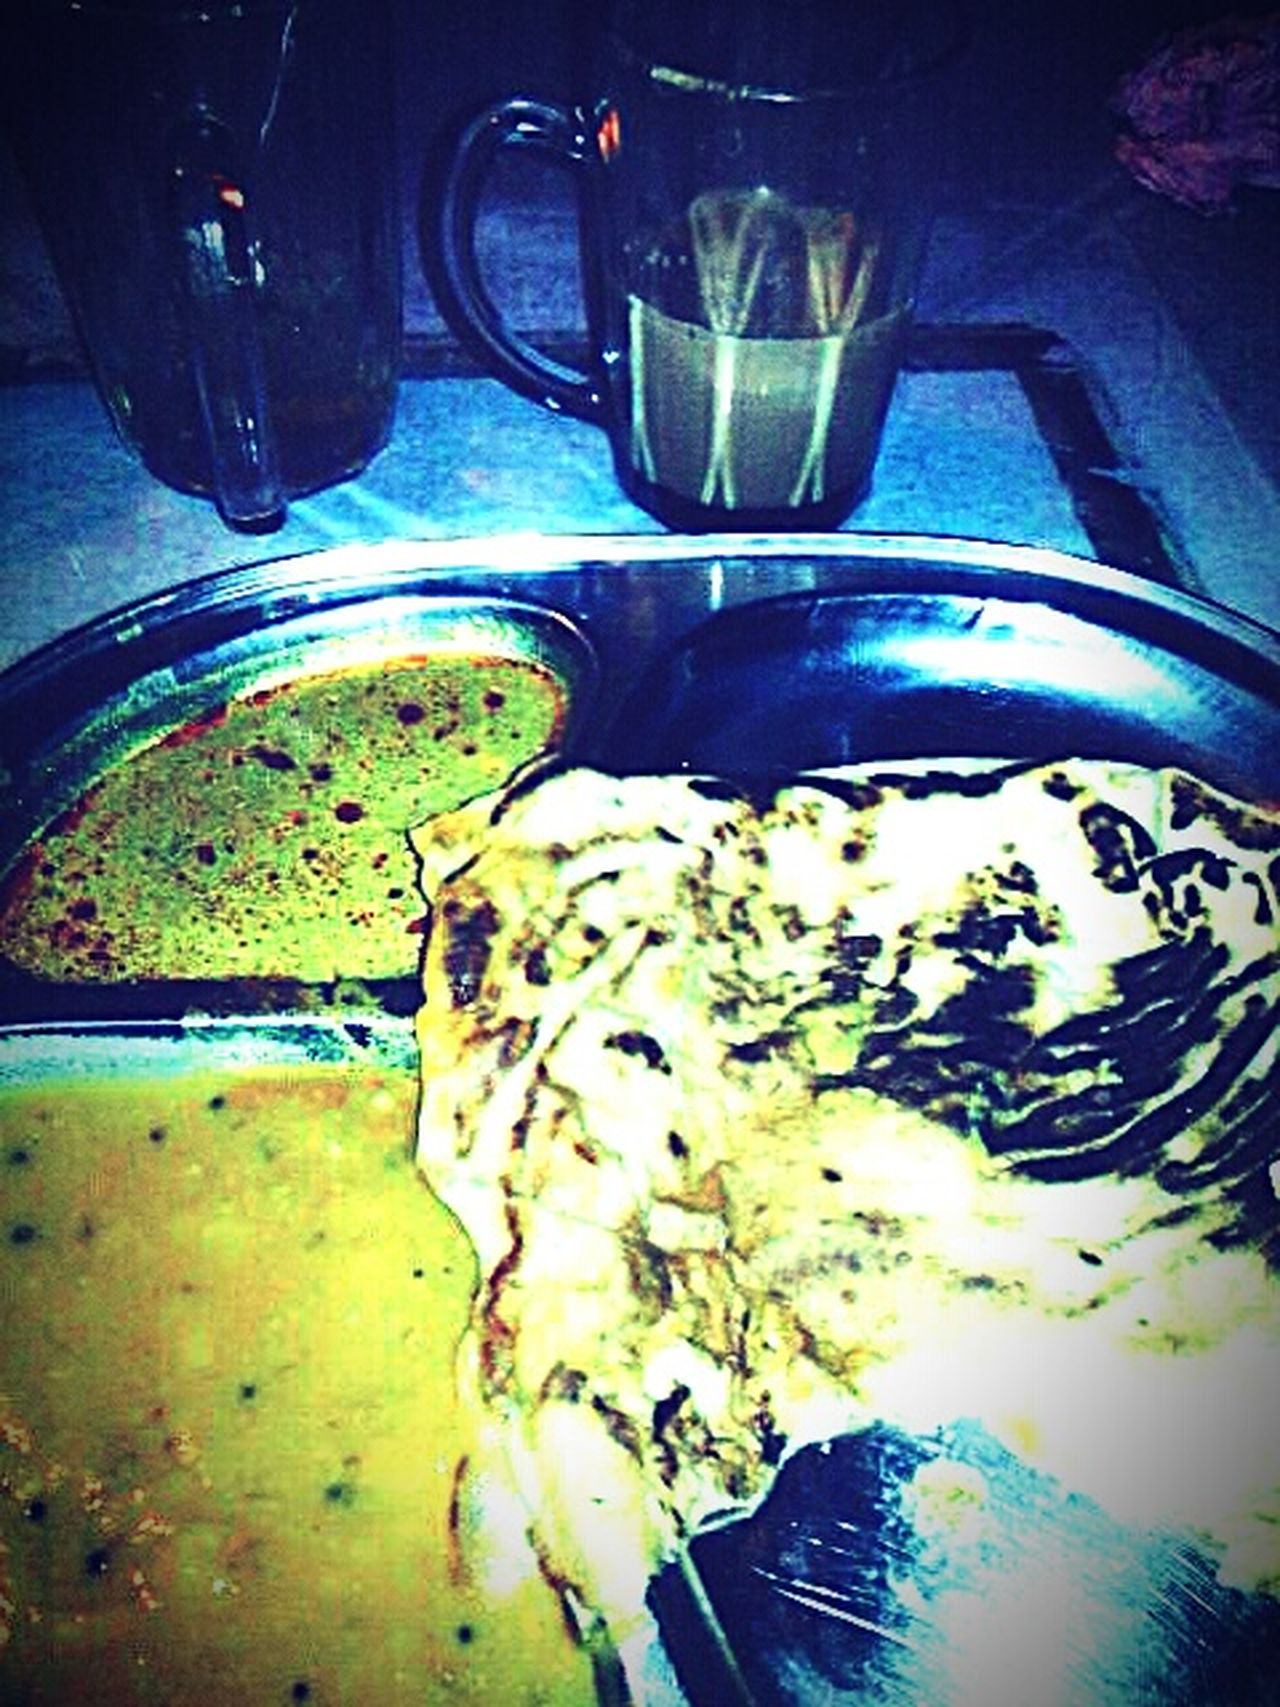 What's For Dinner? Malaysian Food Hungry Food Stall Foodporn Popular Food At Melaka Teh Tarik (Malaysian Pull Tea) Roti Canai Melaka Malaysia The World Heritage